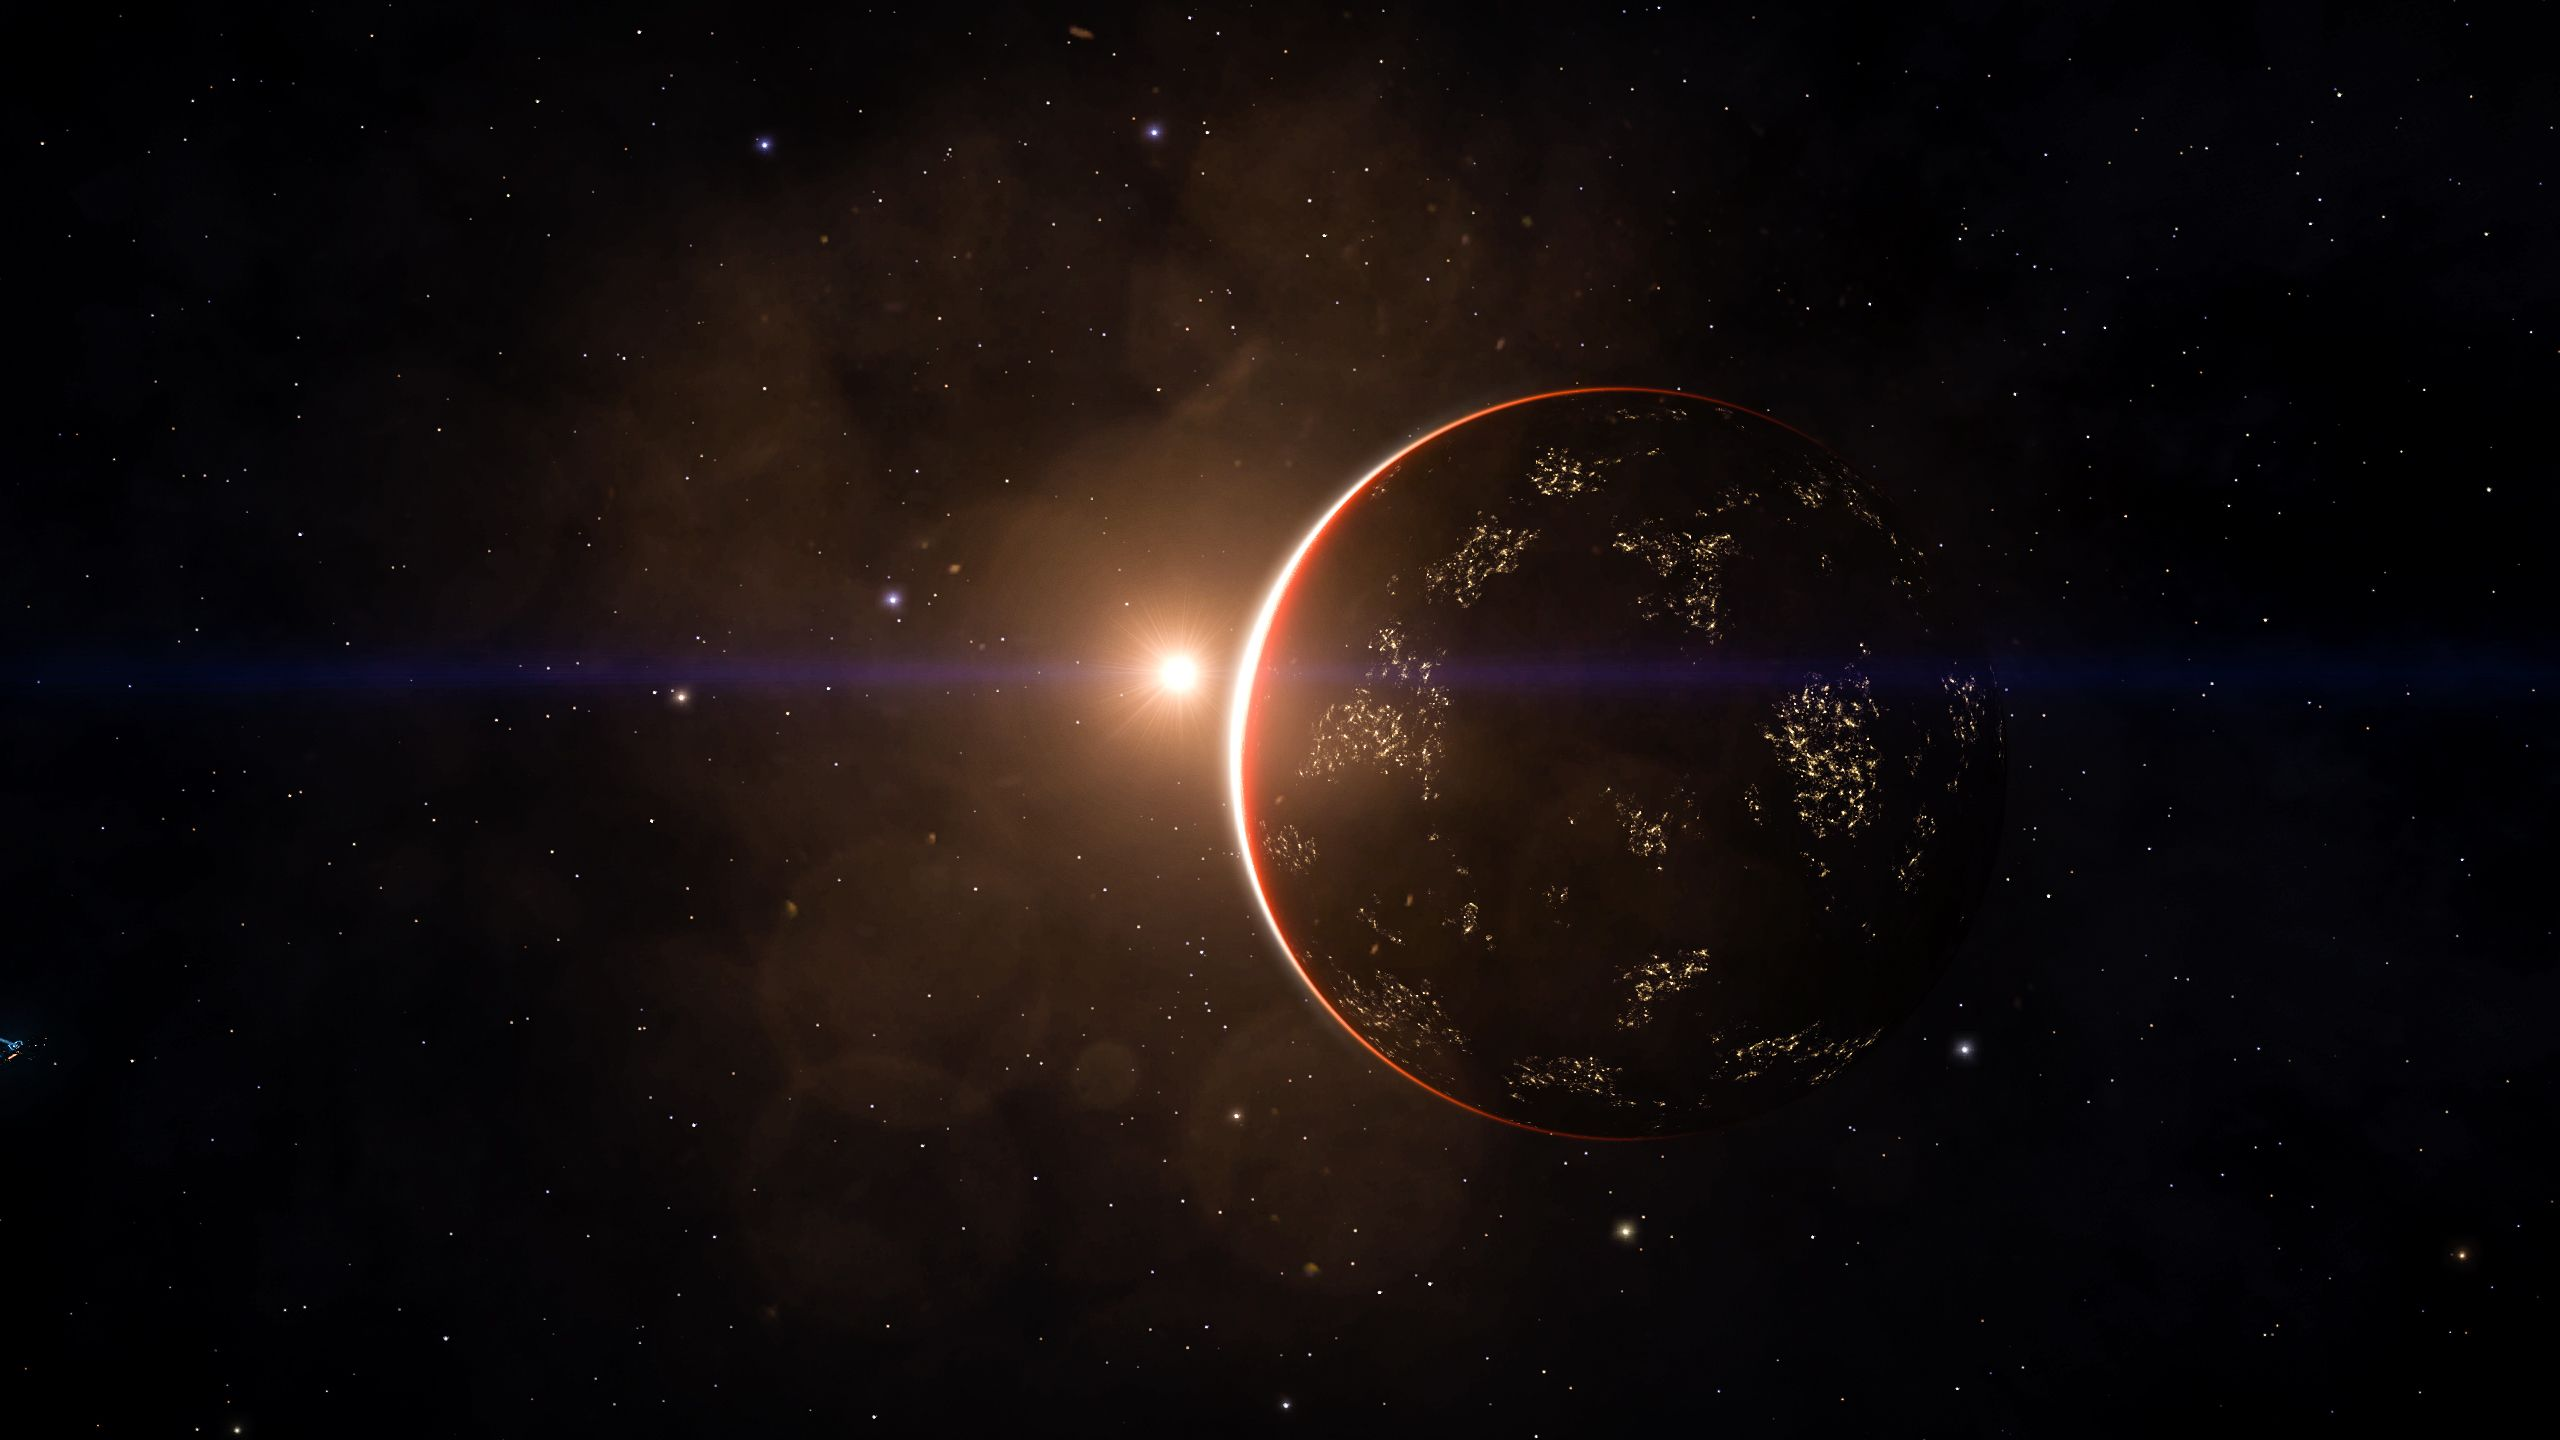 A Wallpaper I Made In The Game Elite Dangerous Wallpaper Dangerous Hd Wallpaper